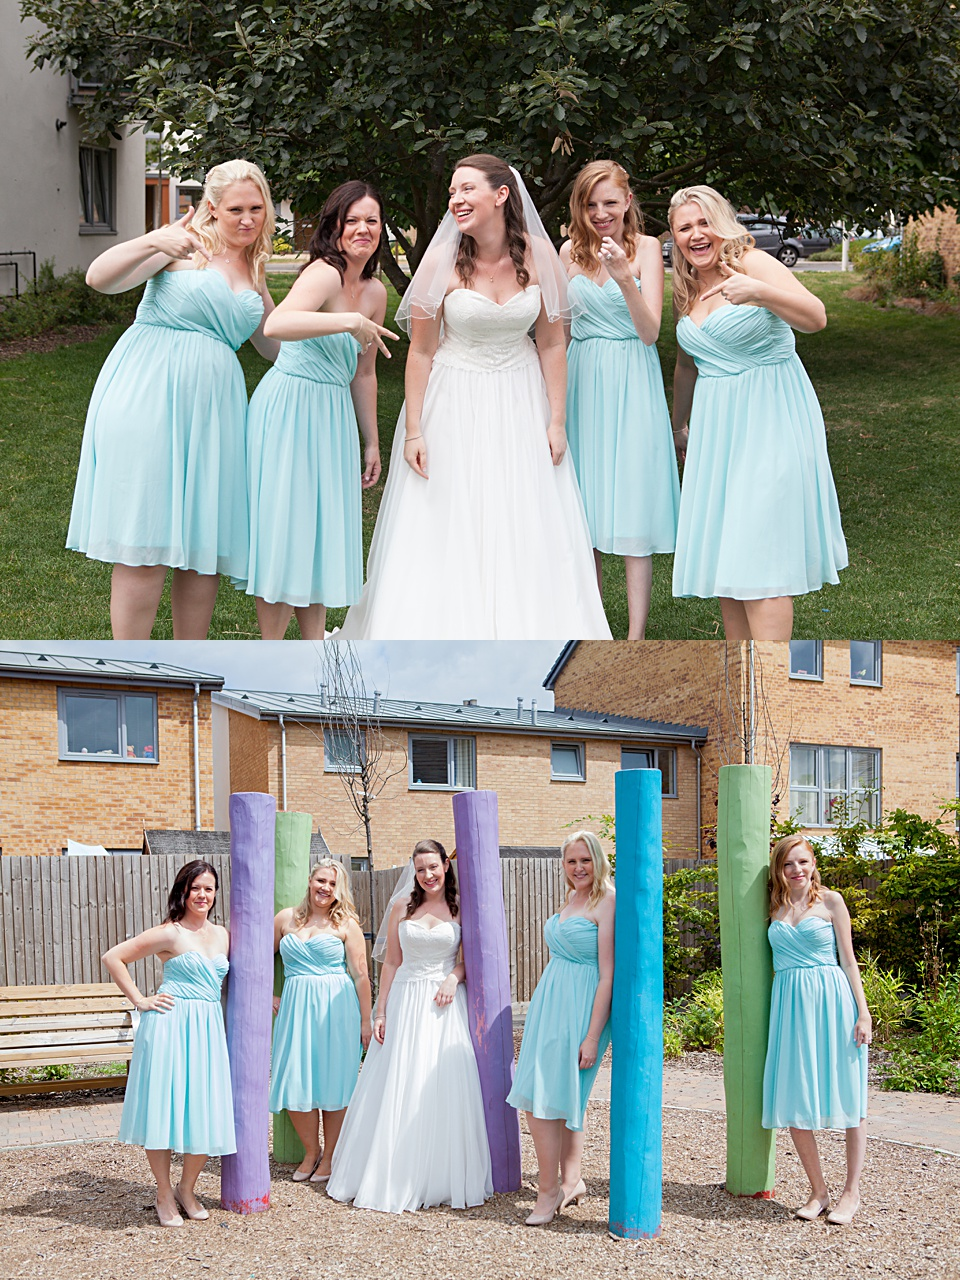 Bridemaid's, Wedding, Wedding Photography, Carla Guest Photography